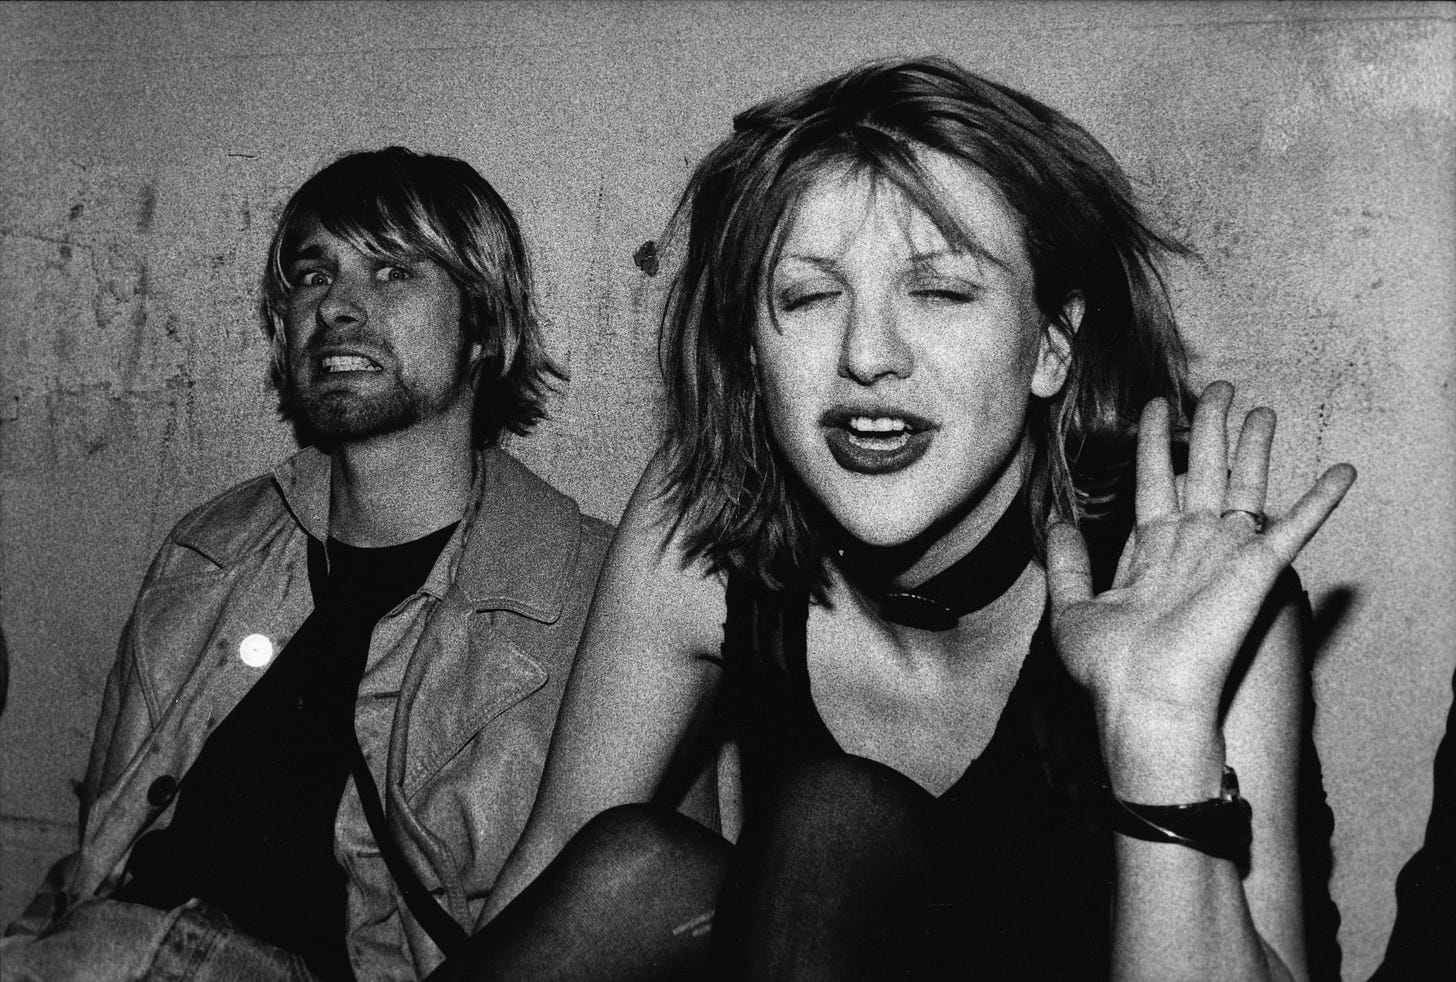 A picture of Kurt Cobain and Courtney Love